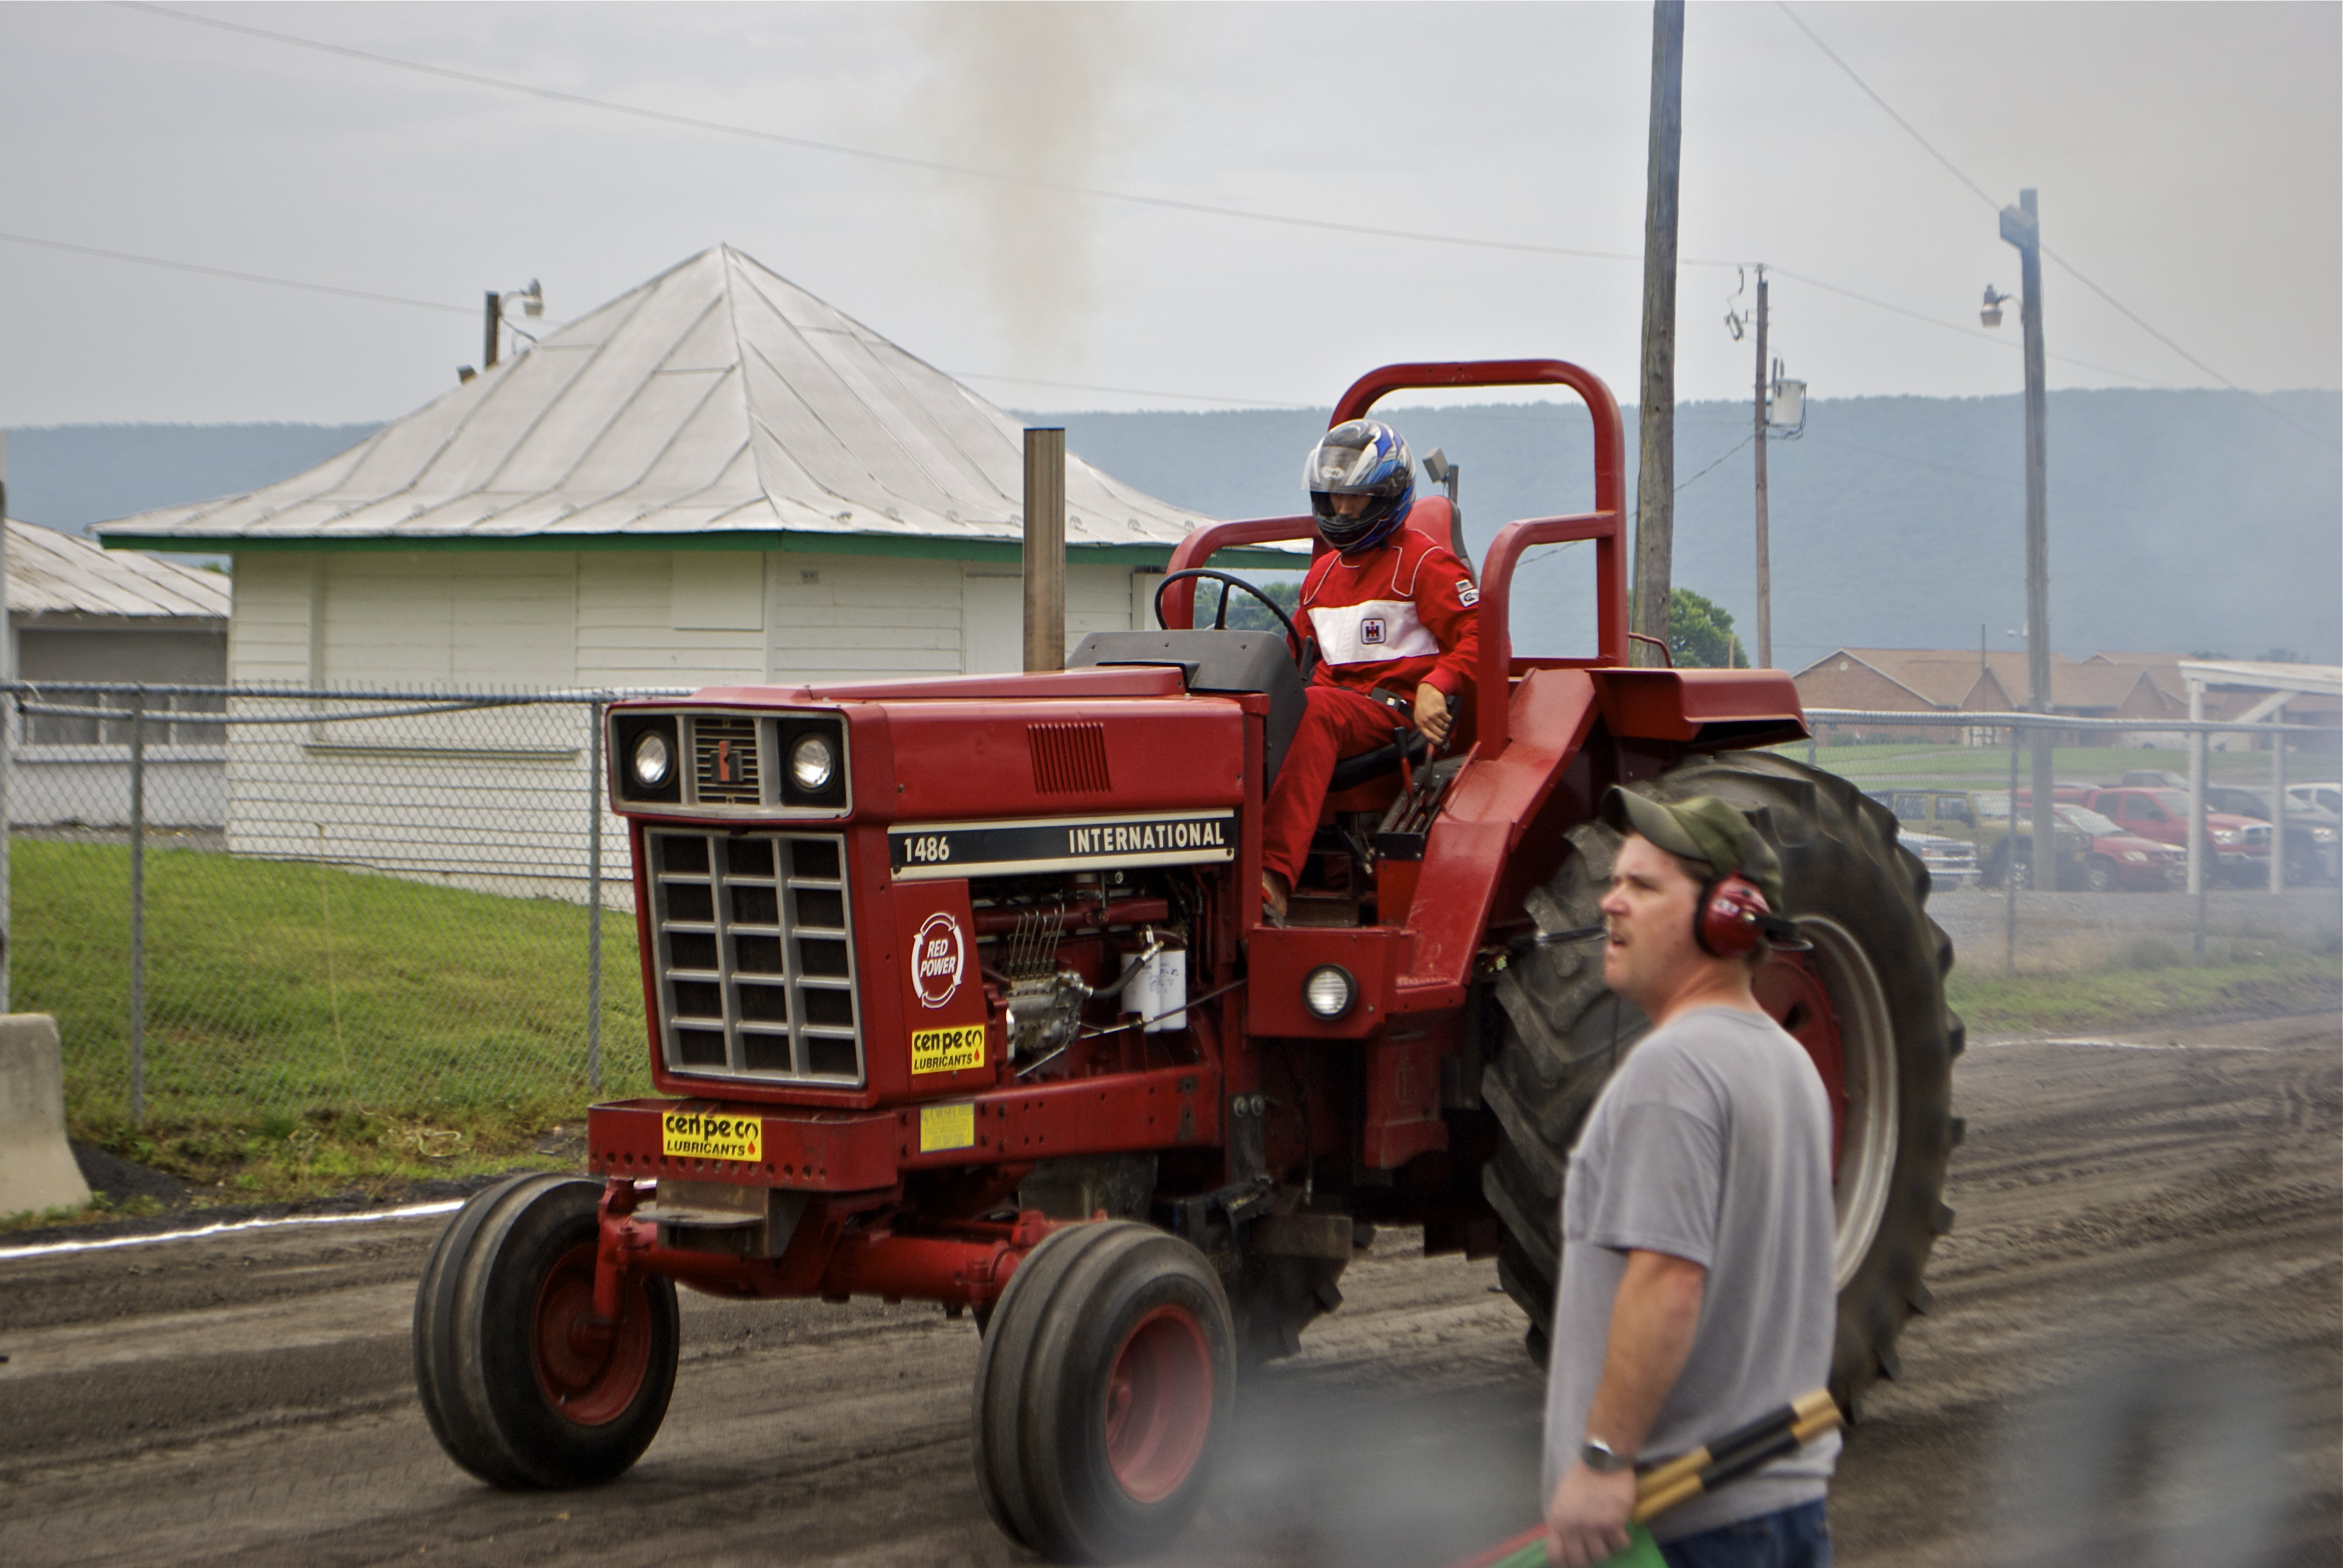 Tractor Pull Tractors : Tractor pulling eathealthybehappylivewell